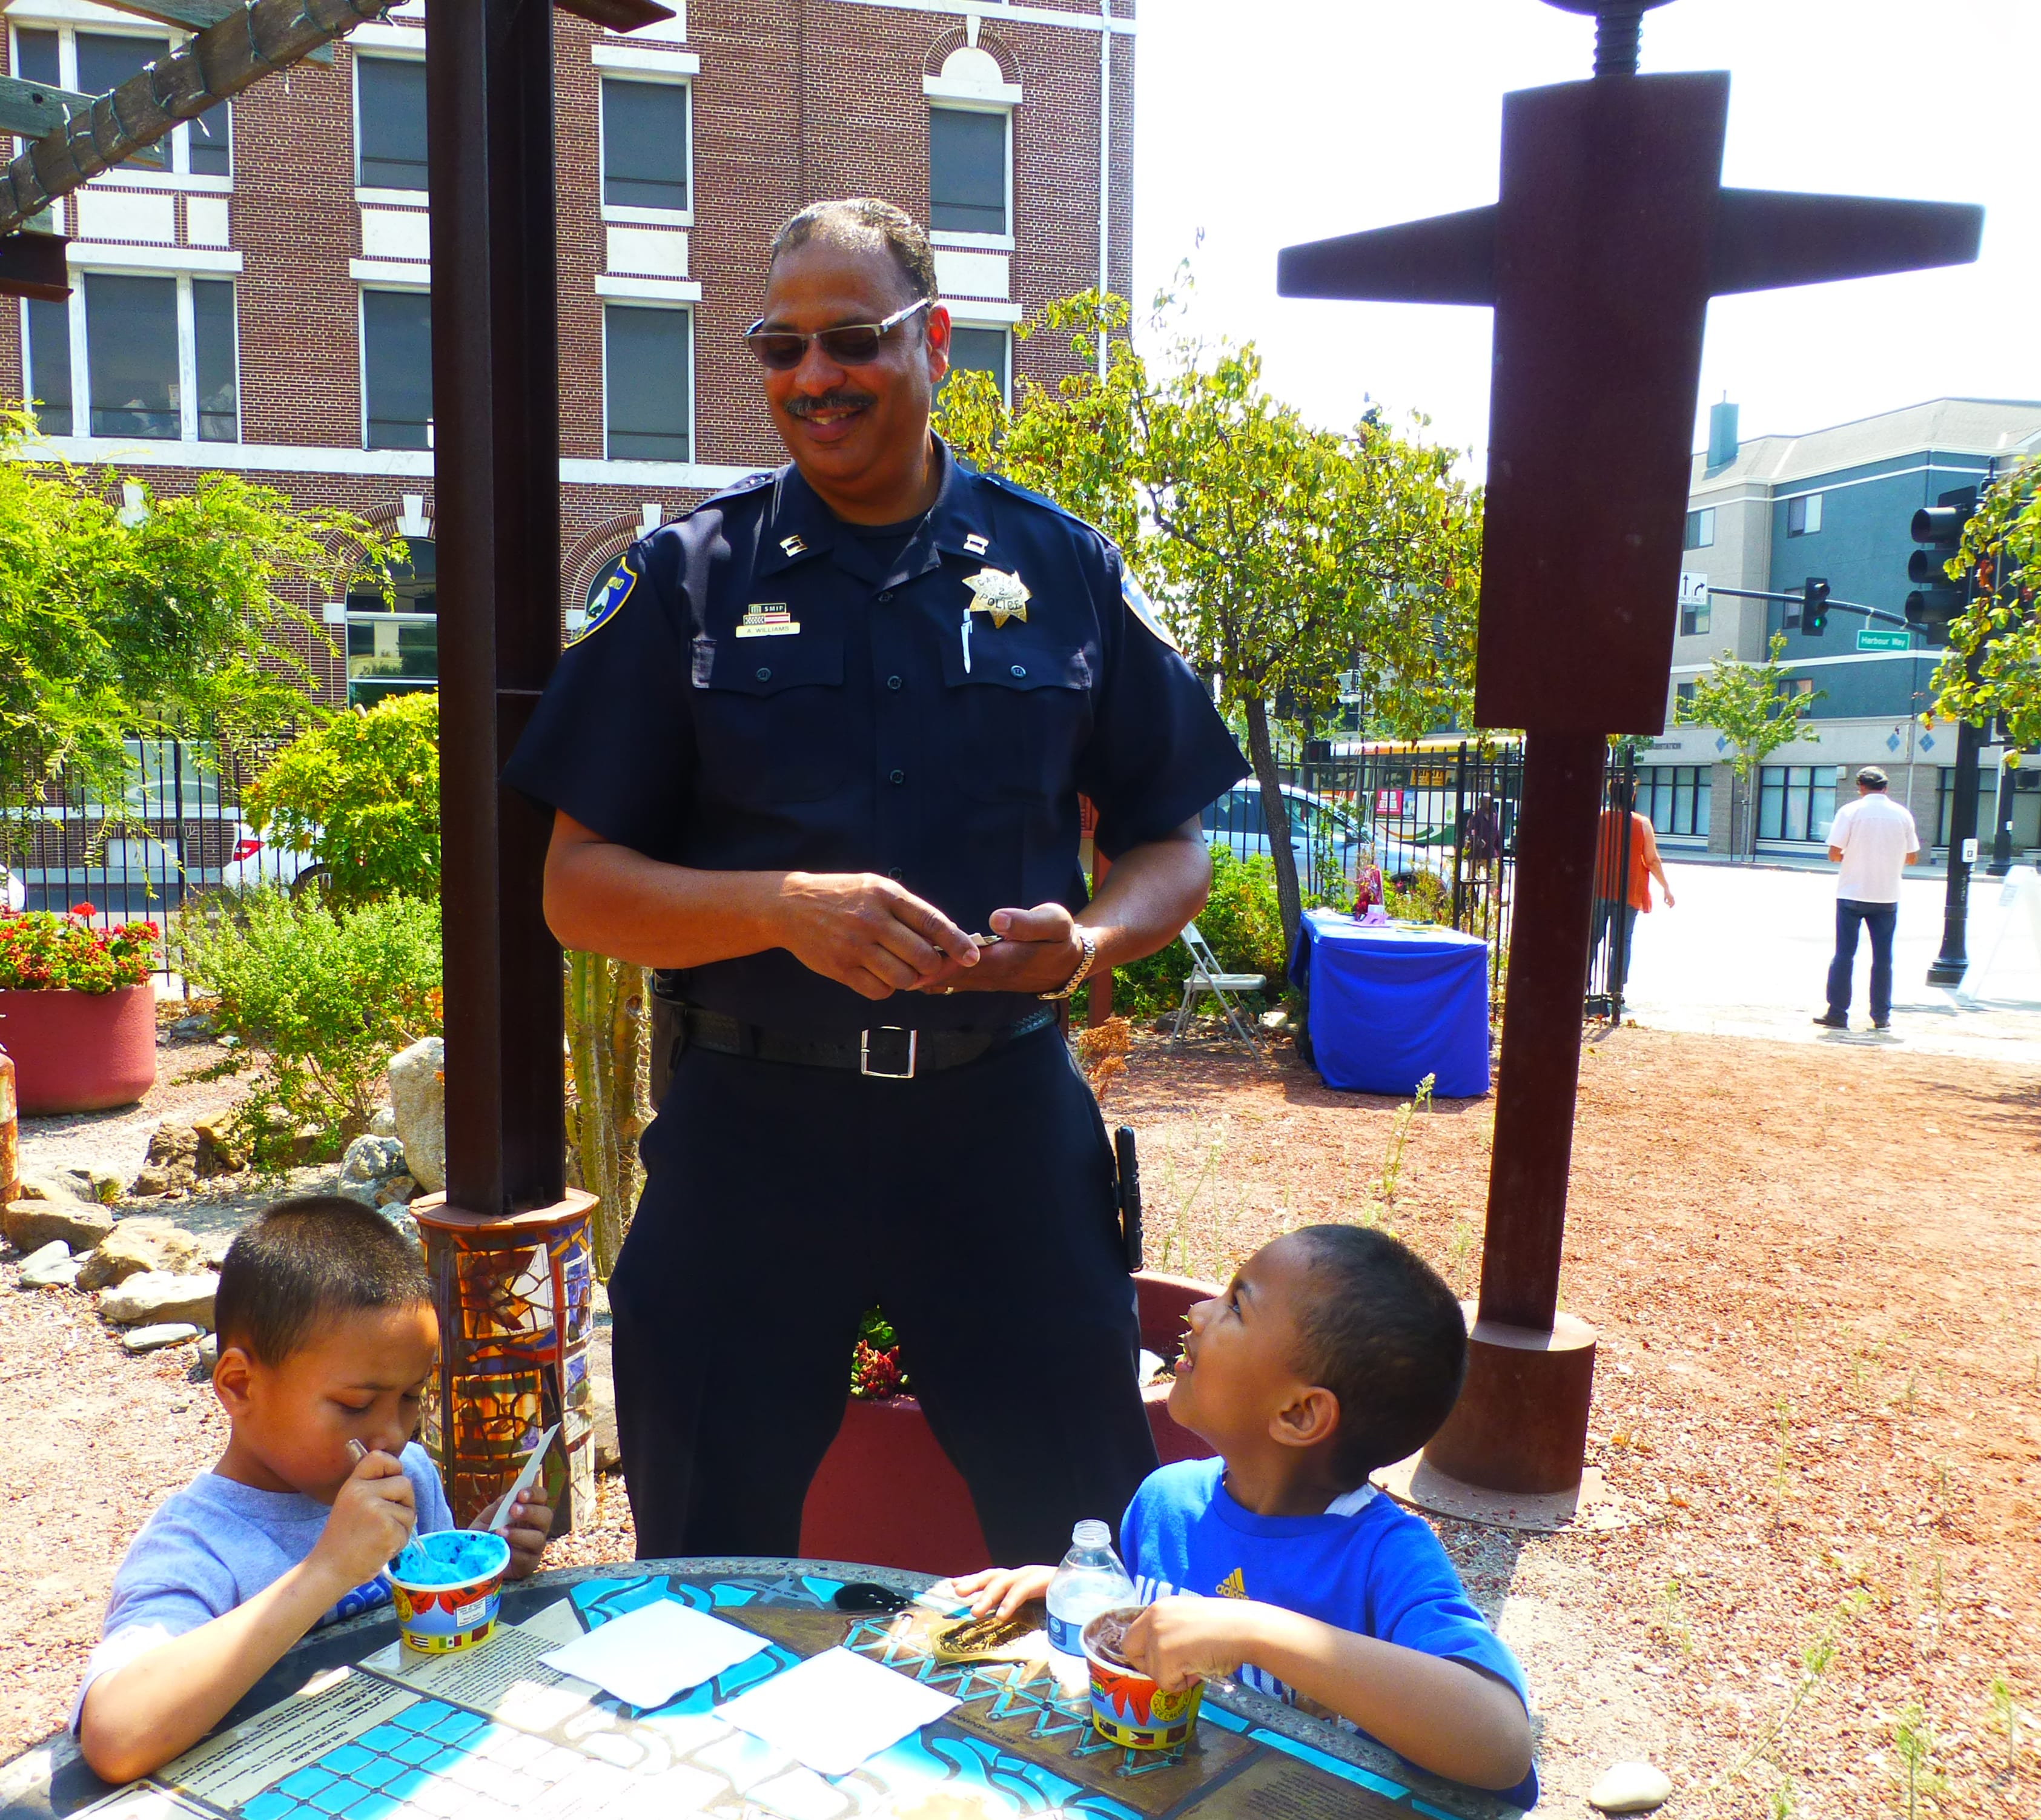 Captain Williams (former) chatting with two boys enjoying ice cream at Chill with a Cop